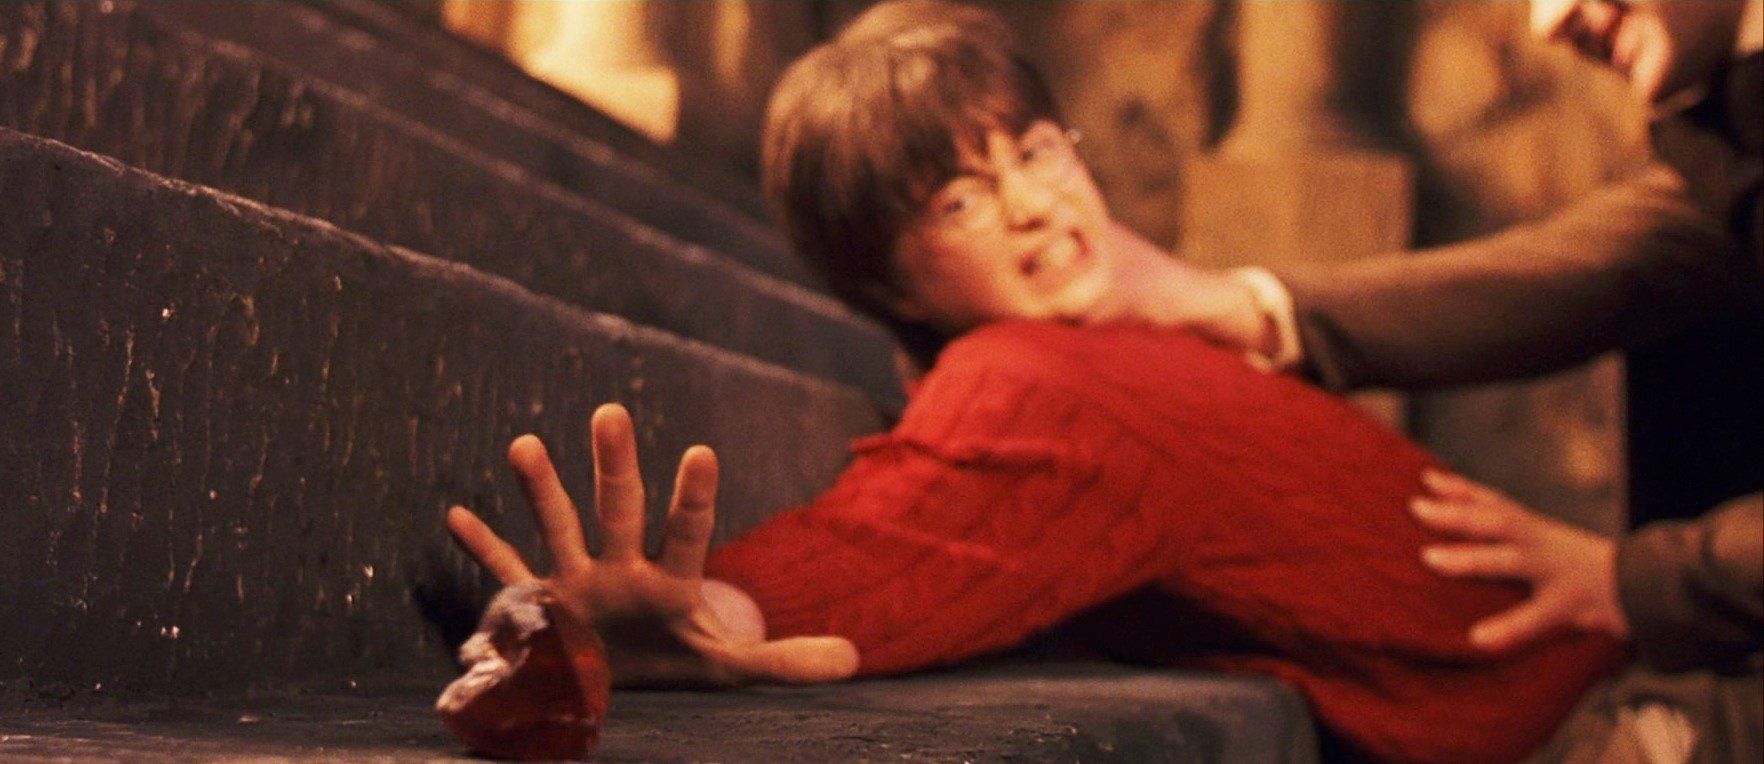 essay harry potter philosophers stone Harry potter and the sorcerer's stone 2 pages 562 words august 2015 saved essays save your essays here so you can locate them quickly.